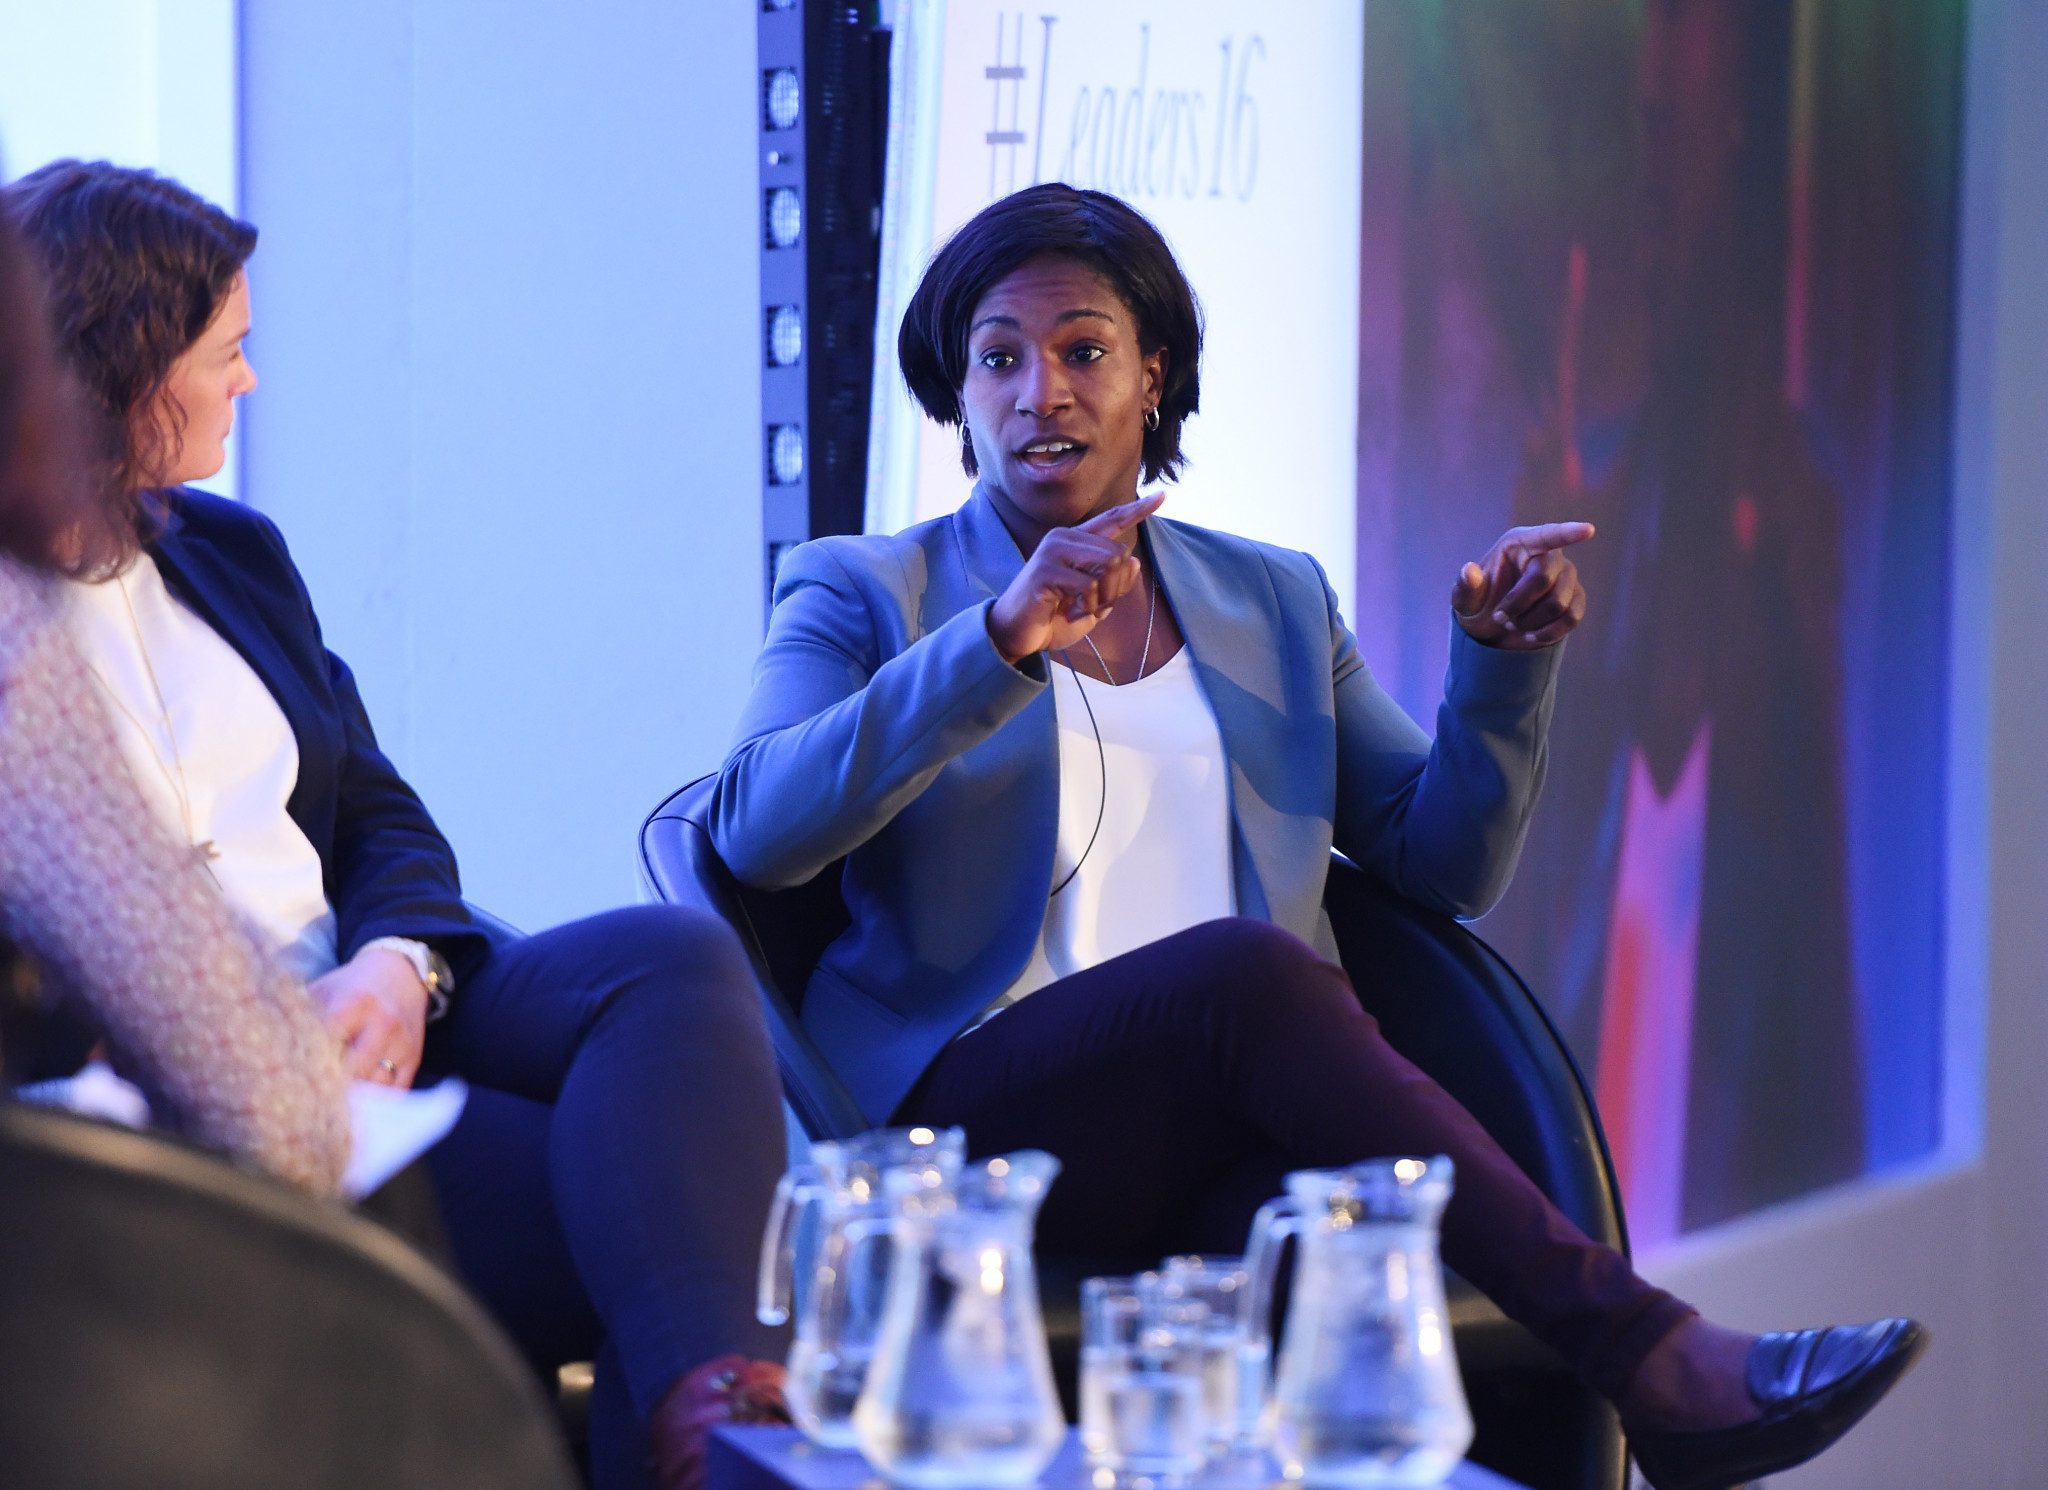 Former England international and World Rugby Hall of Fame inductee Maggie Alphonsi will co-host the World Rugby Awards ©Getty Images